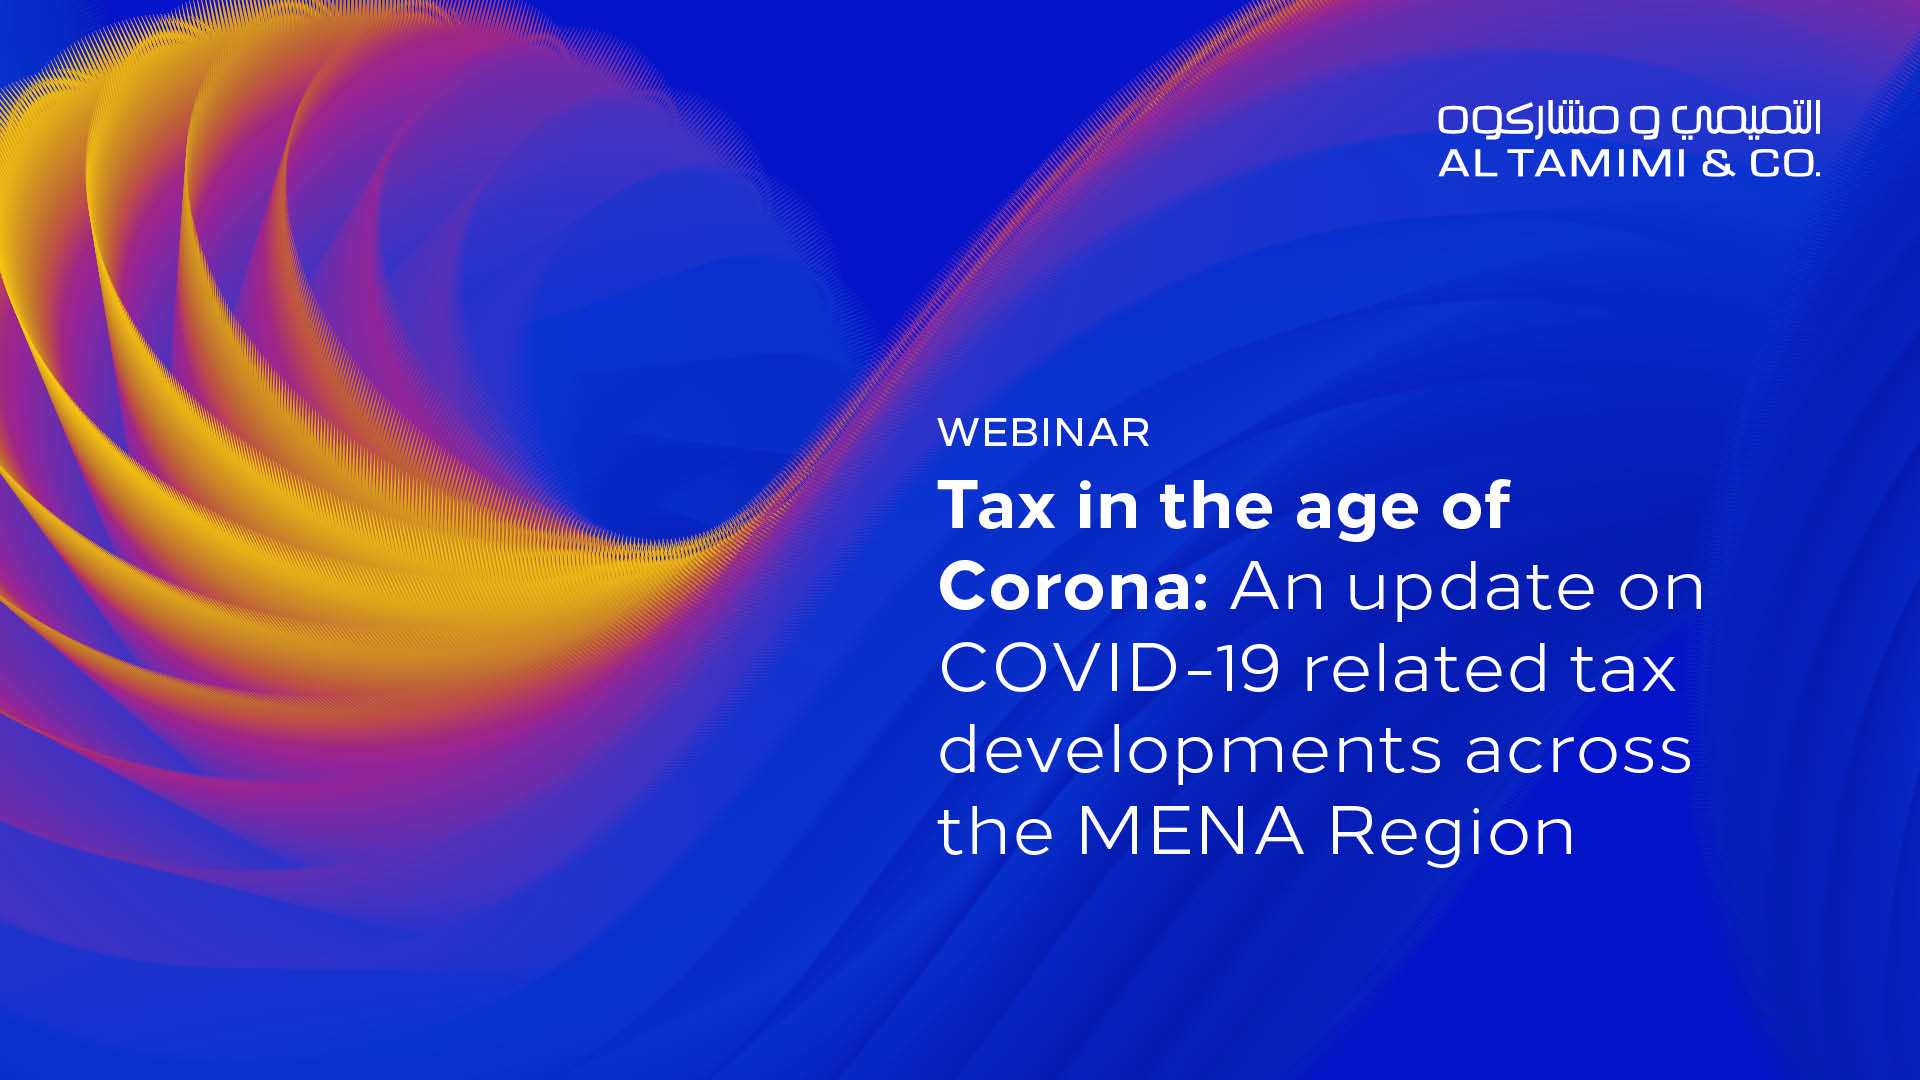 Tax in the age of Corona: An update on COVID-19 related tax developments across the MENA Region